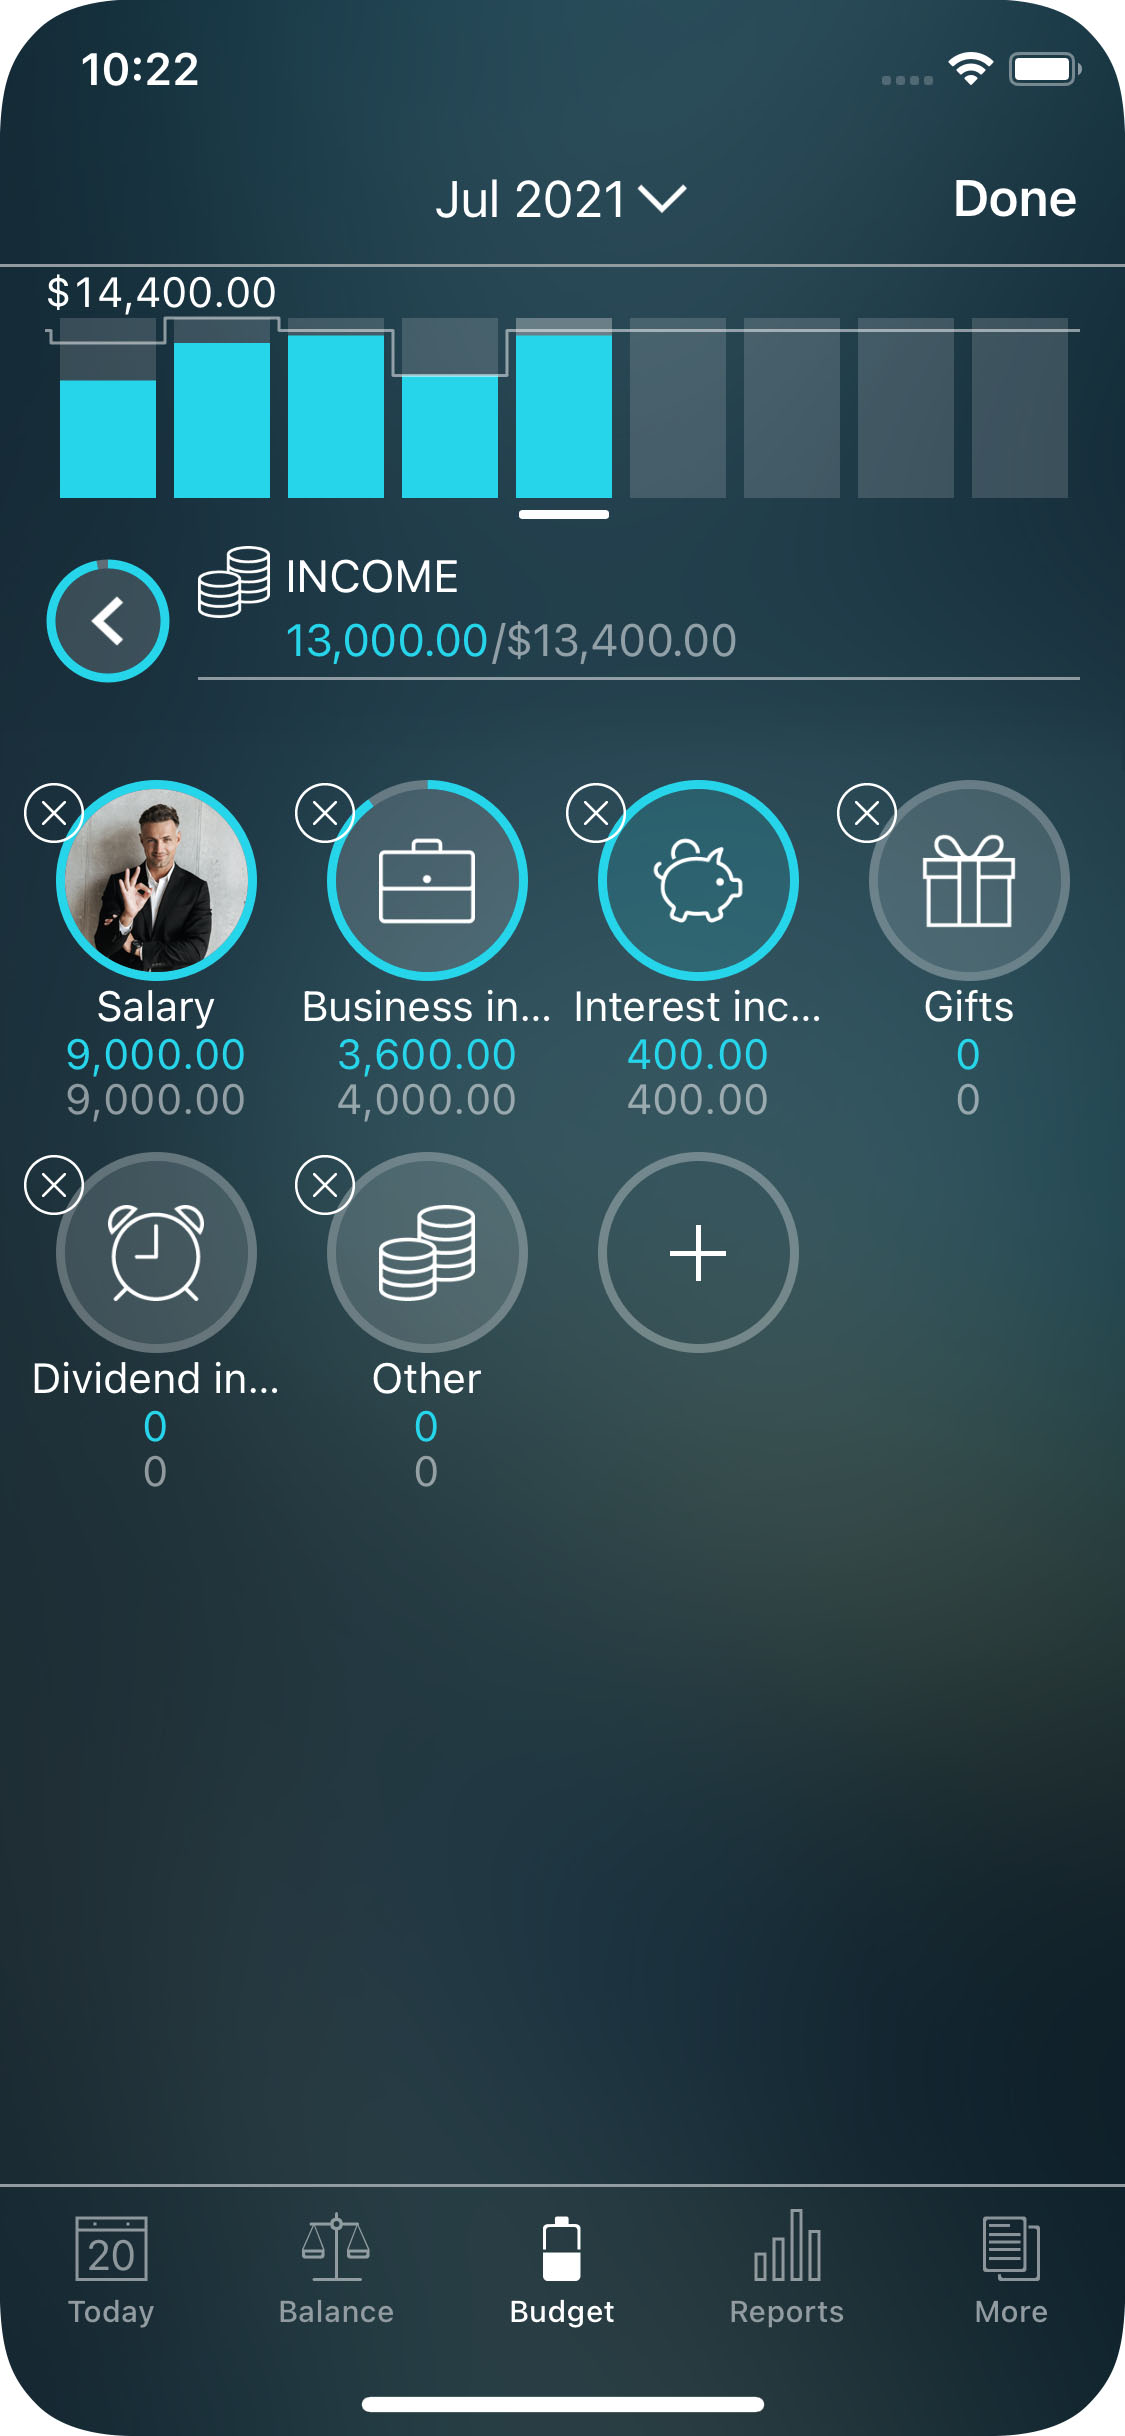 Money Pro for iPhone - Budget - Income